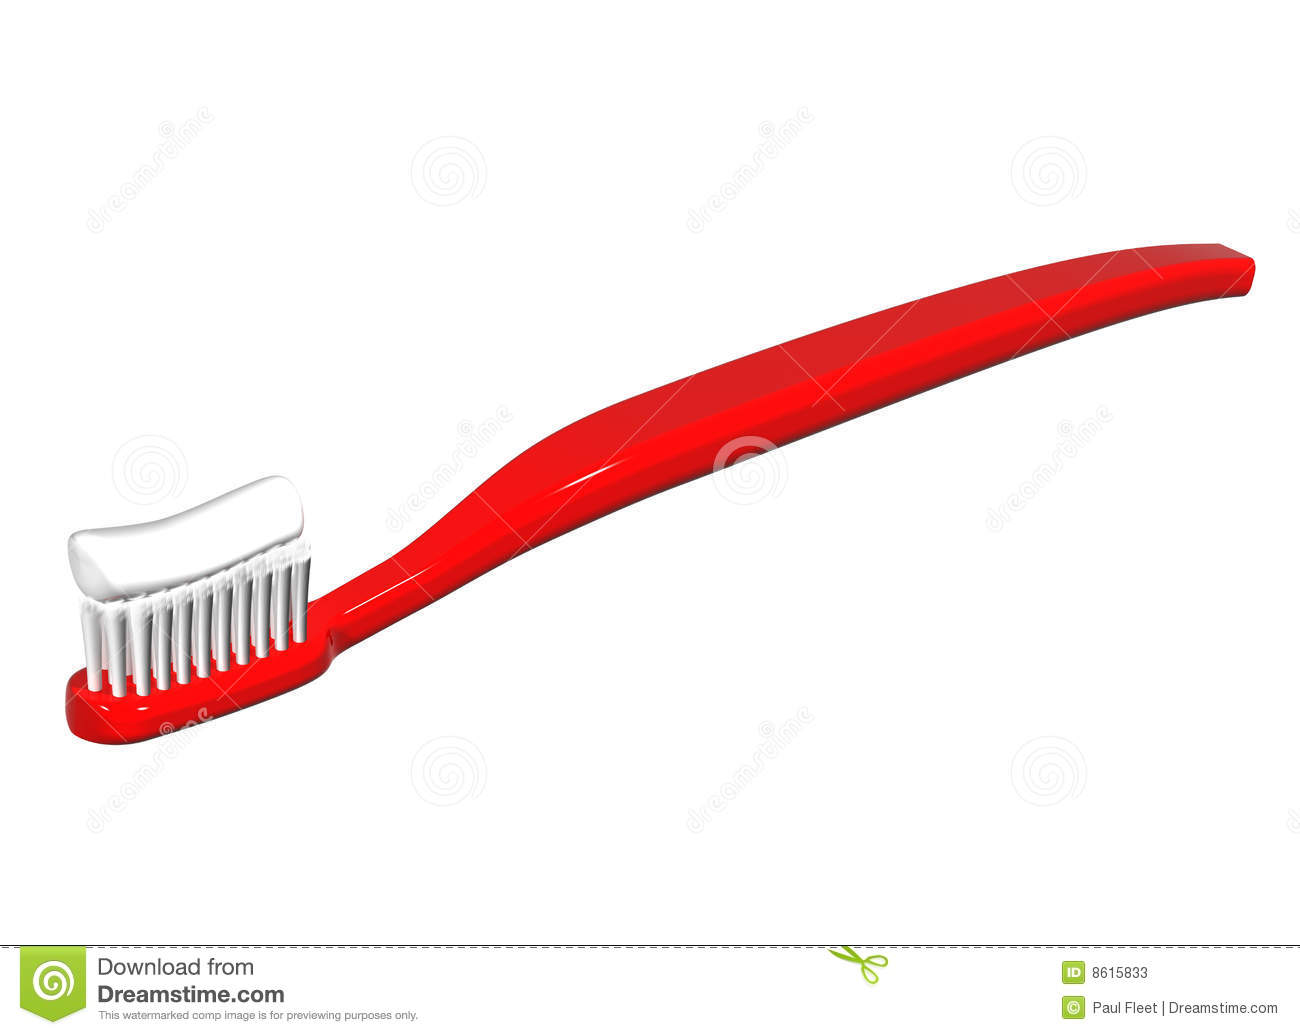 Isolated illustration of a shiny red toothbrush with toothpaste on it.